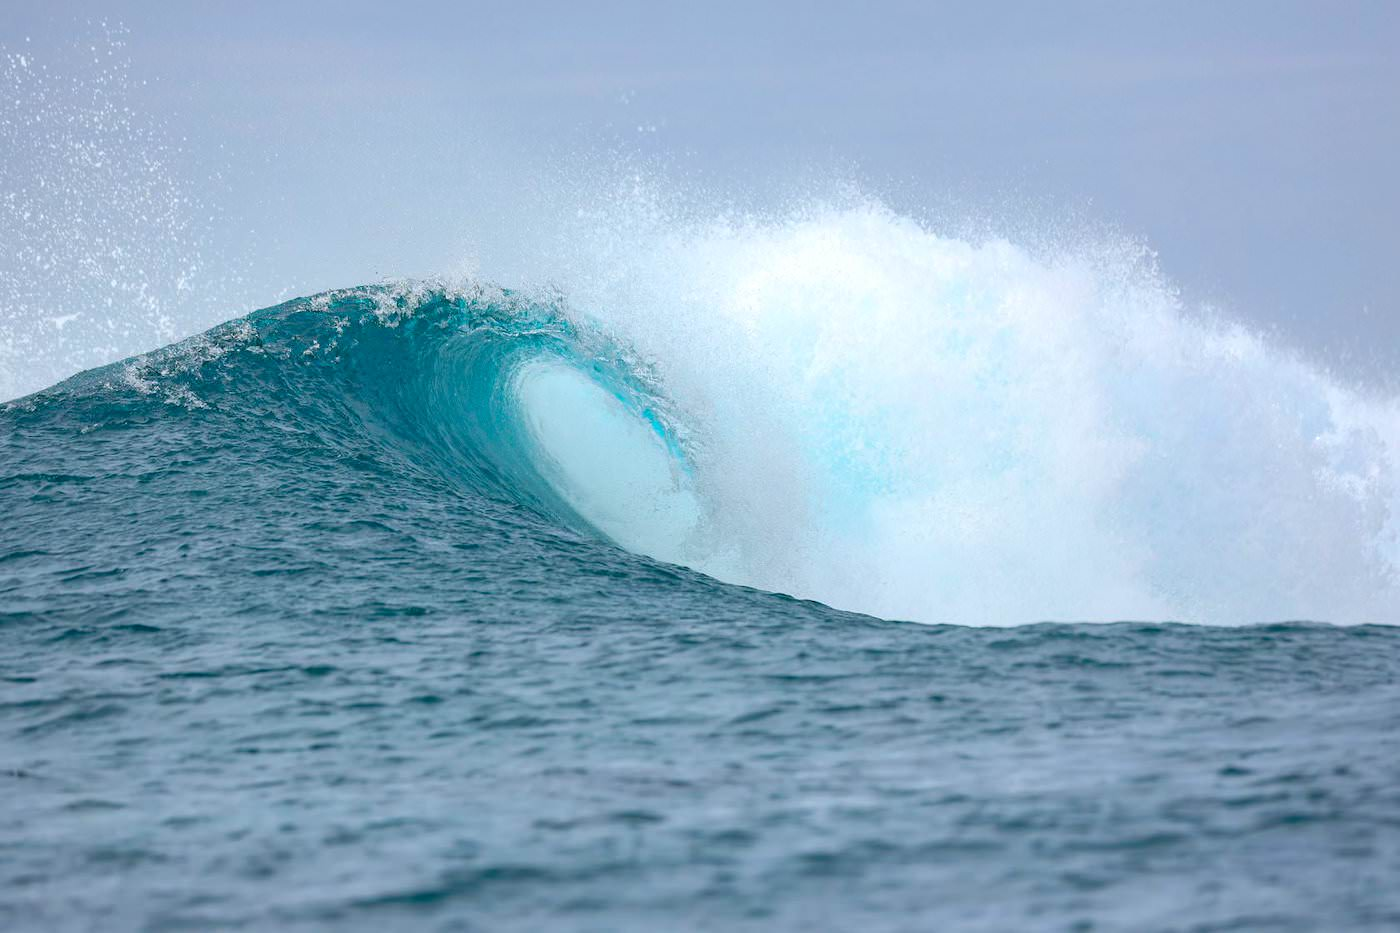 Maldives Explorer Charter Boat for surfing and diving around the atolls waves